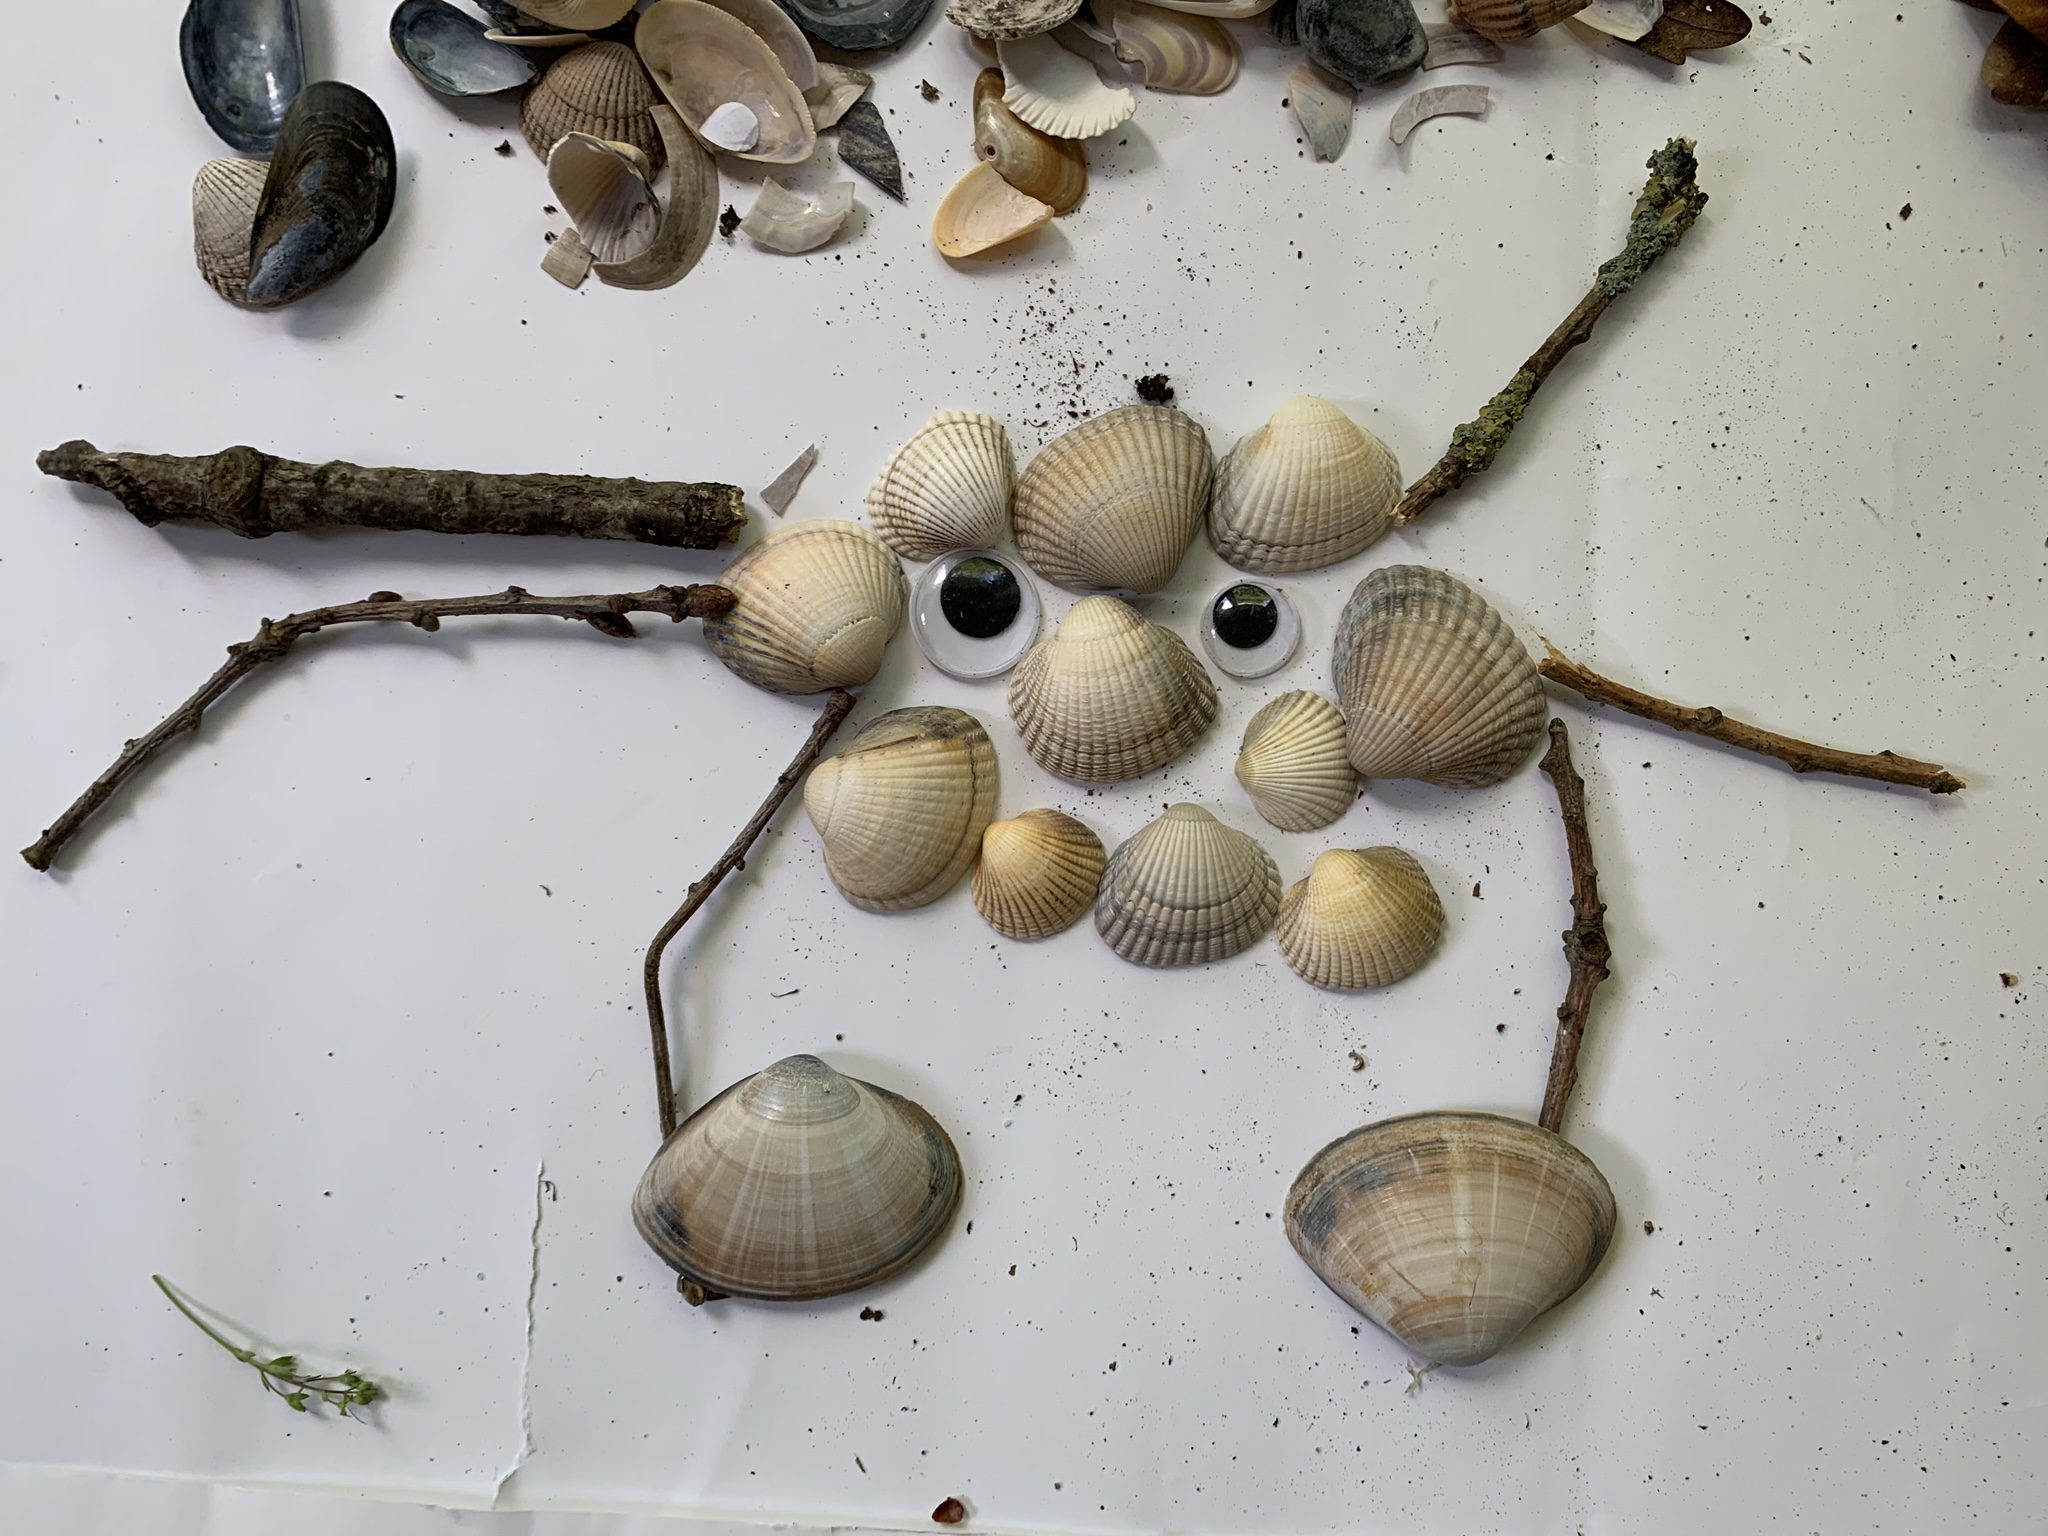 Making nature creatures, crab made from shells